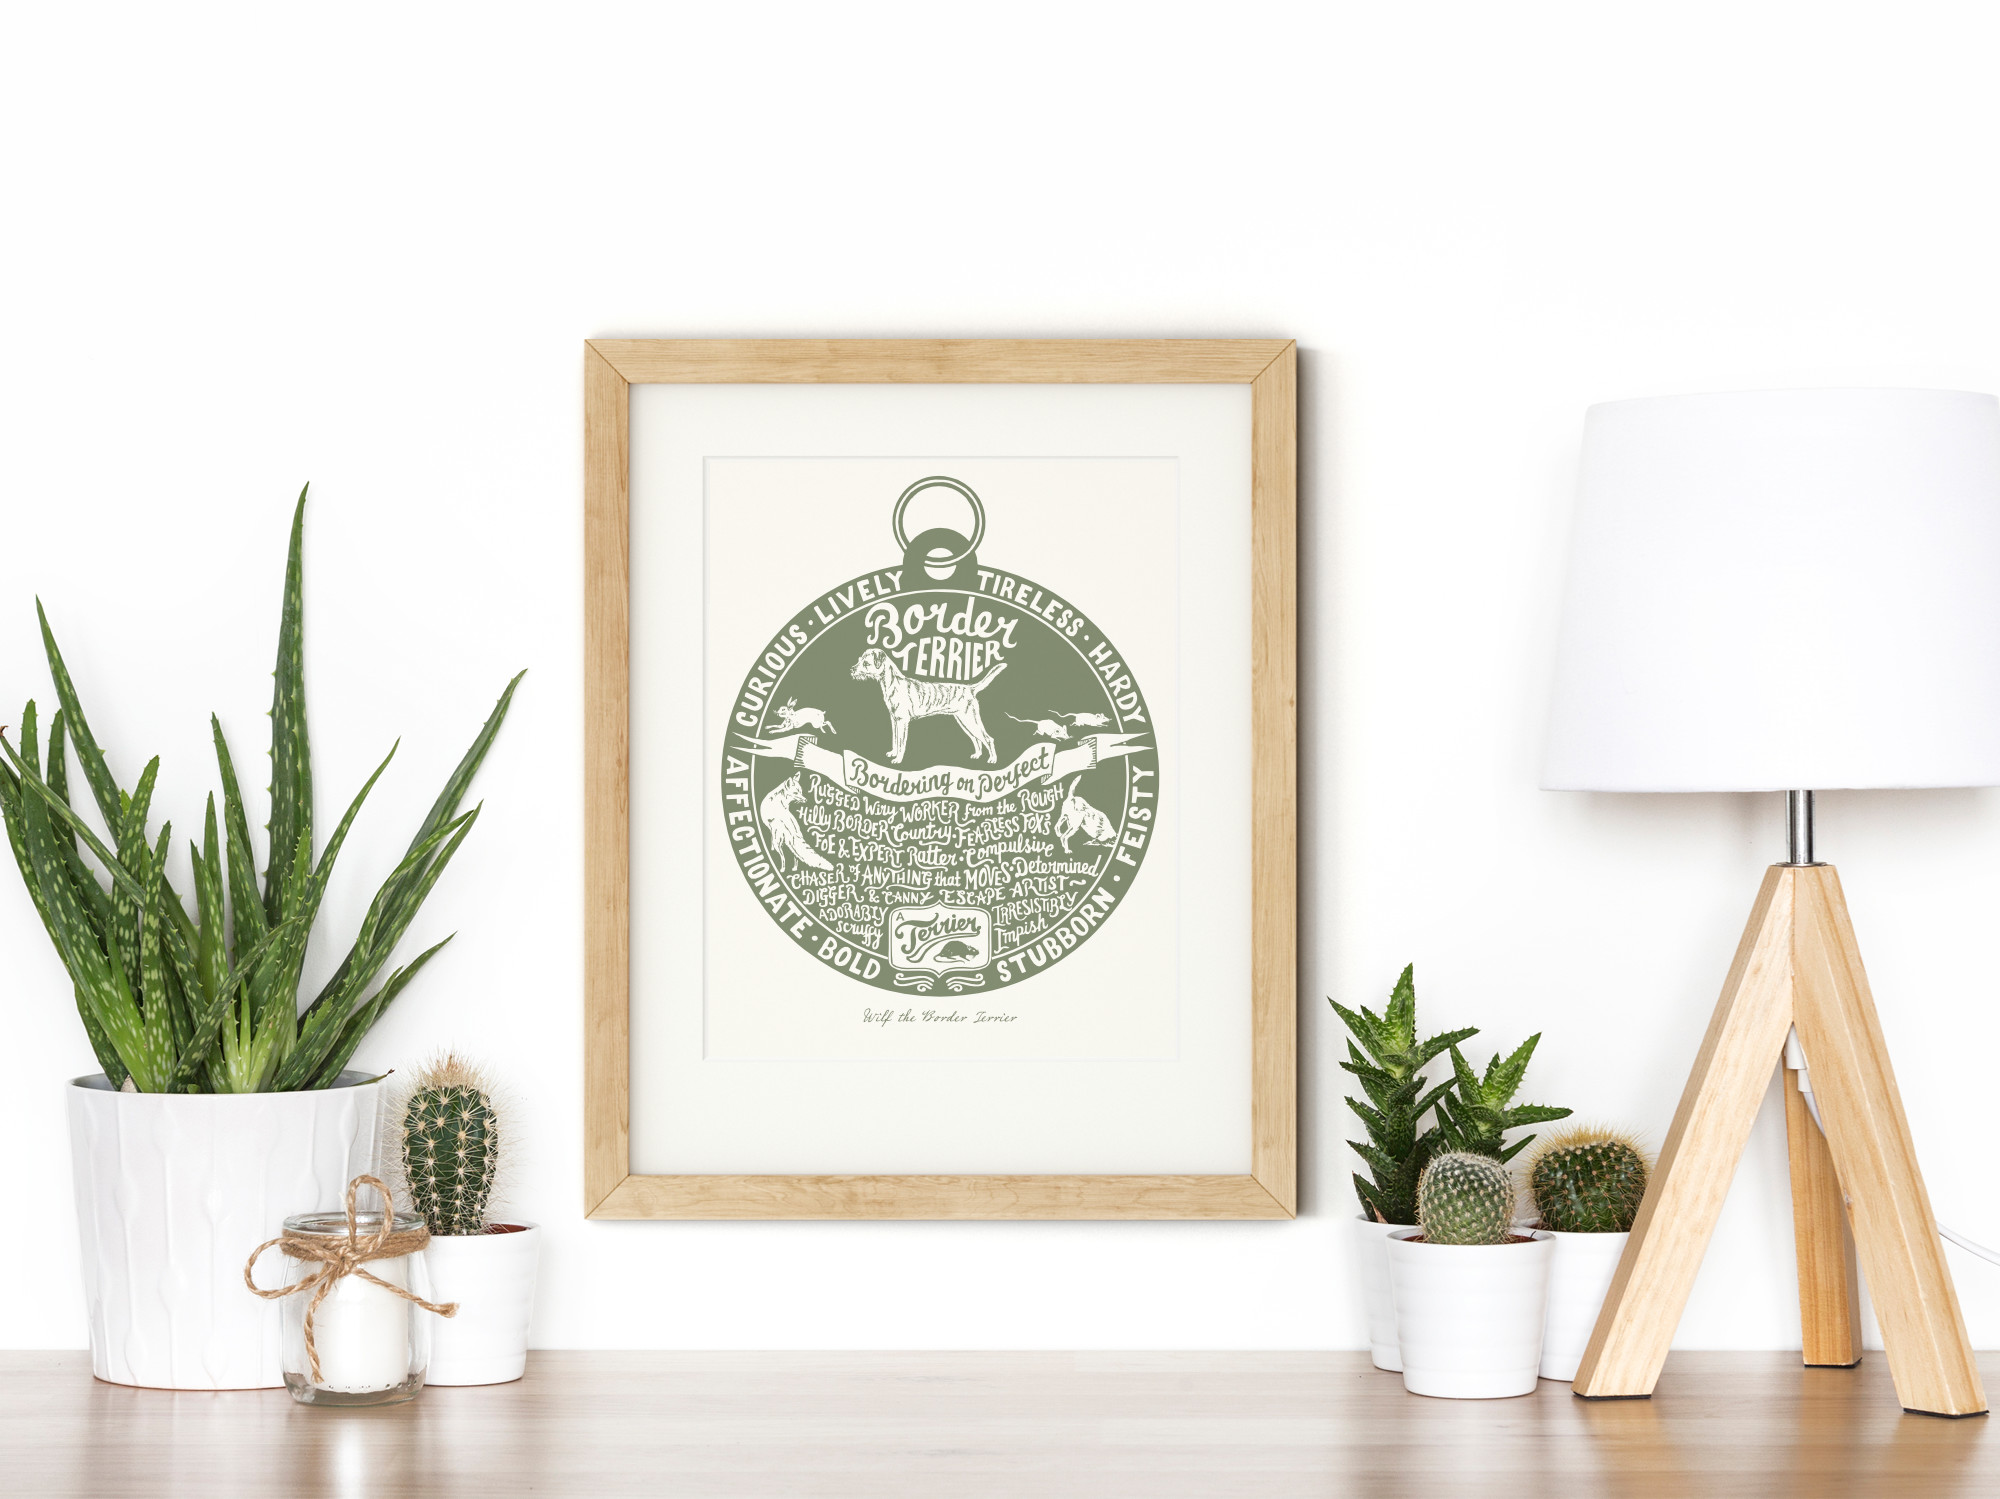 Border Terrier lover dog art gifts by The Enlightened Hound